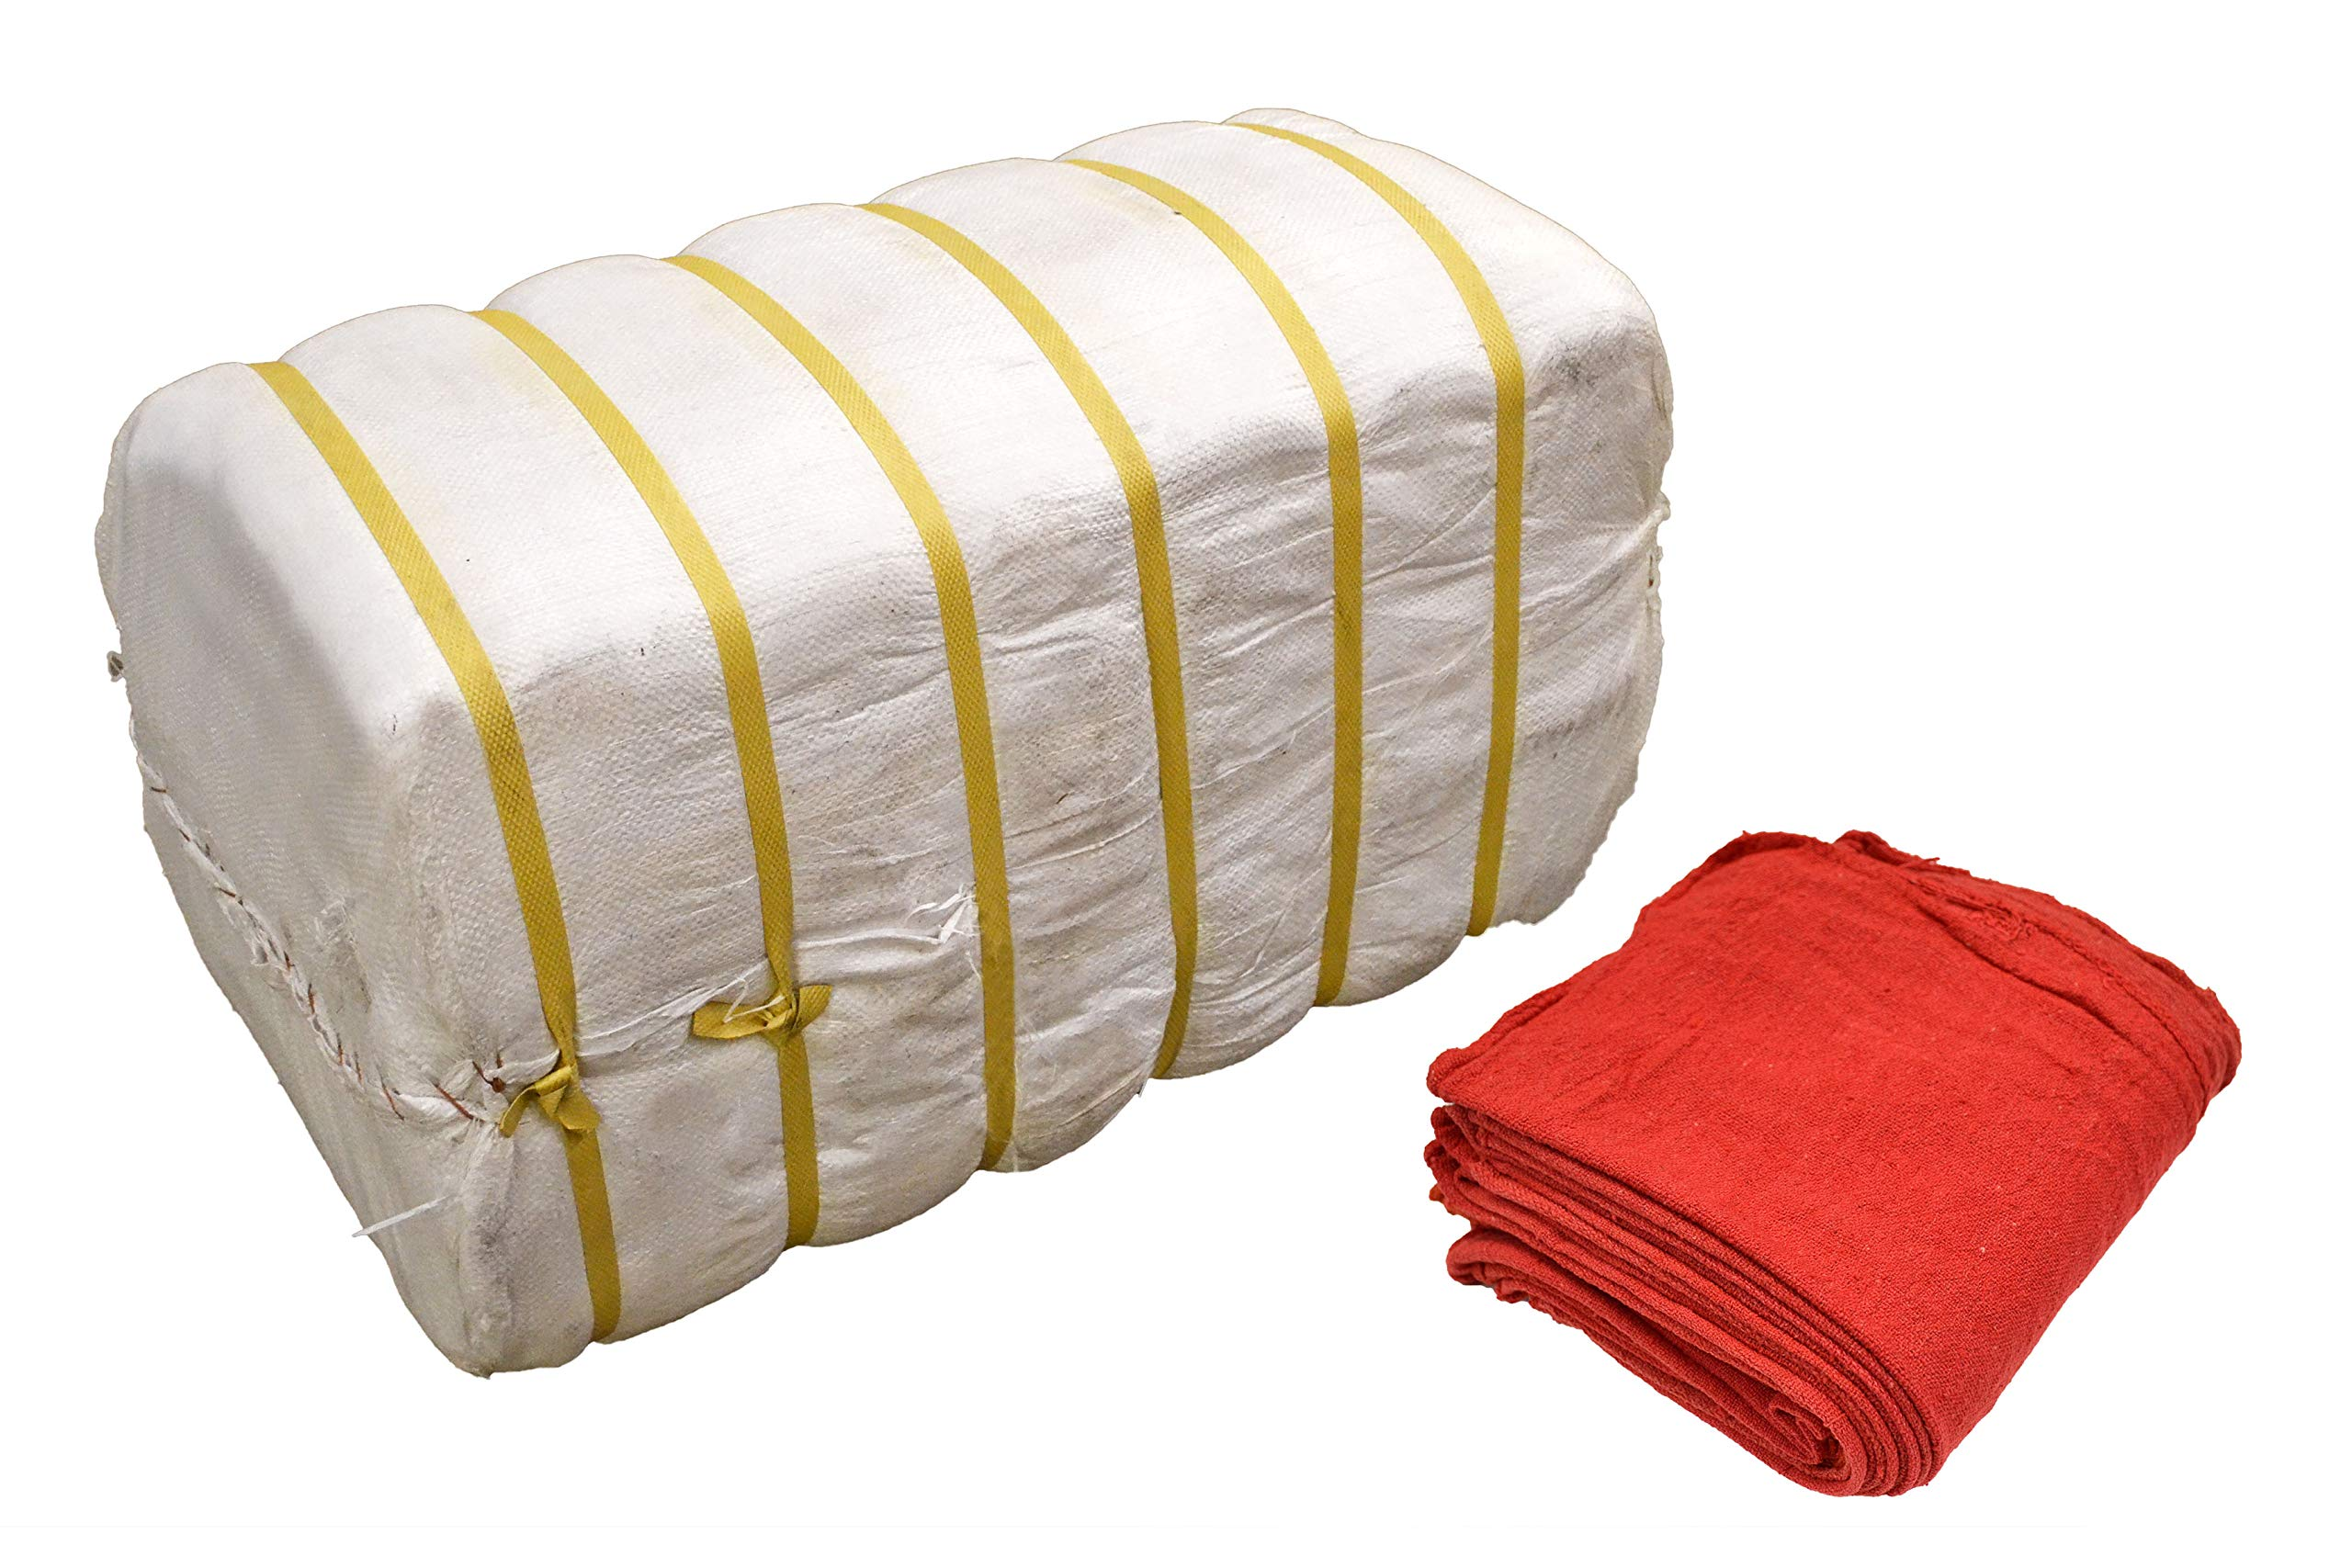 Tuf-Clean 21818 Shop Towels, 100% Cotton, Red, Bale of 2,500 by Tuf-Clean (Image #1)